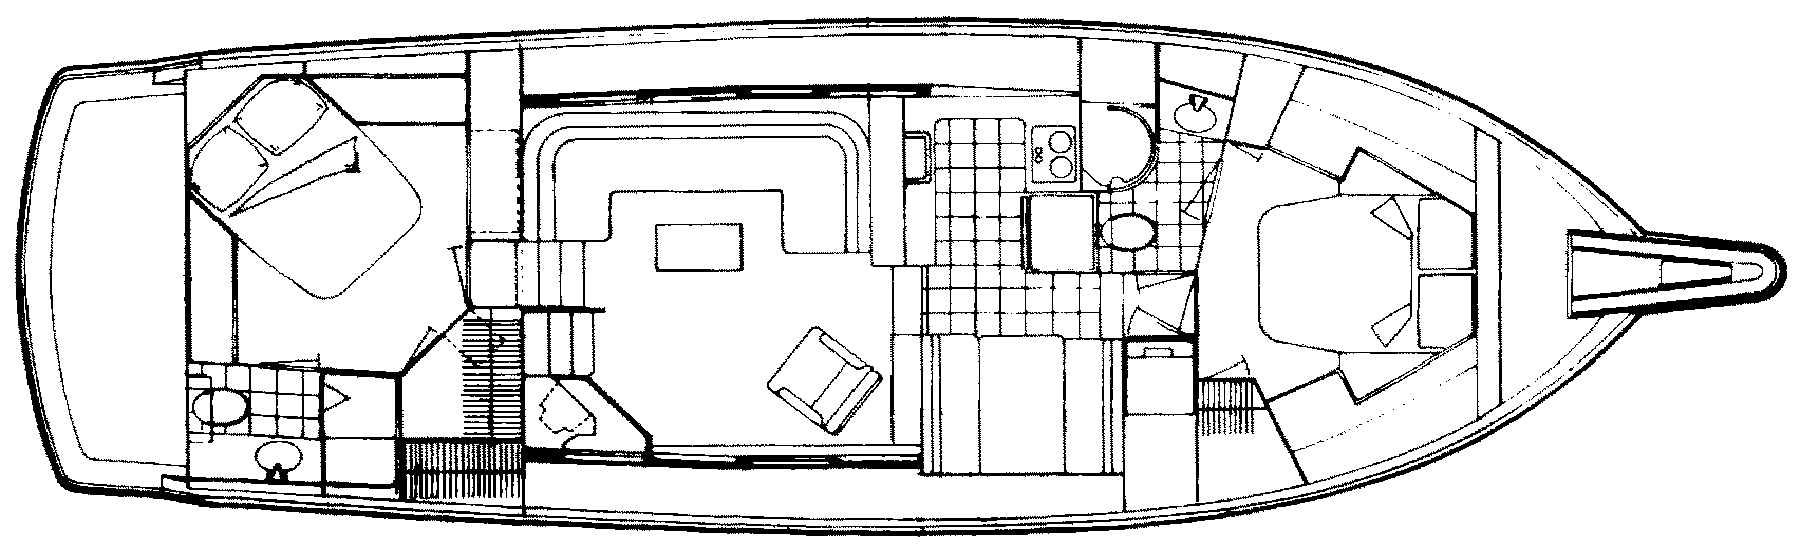 48 Cockpit Motor Yacht Floor Plan 2